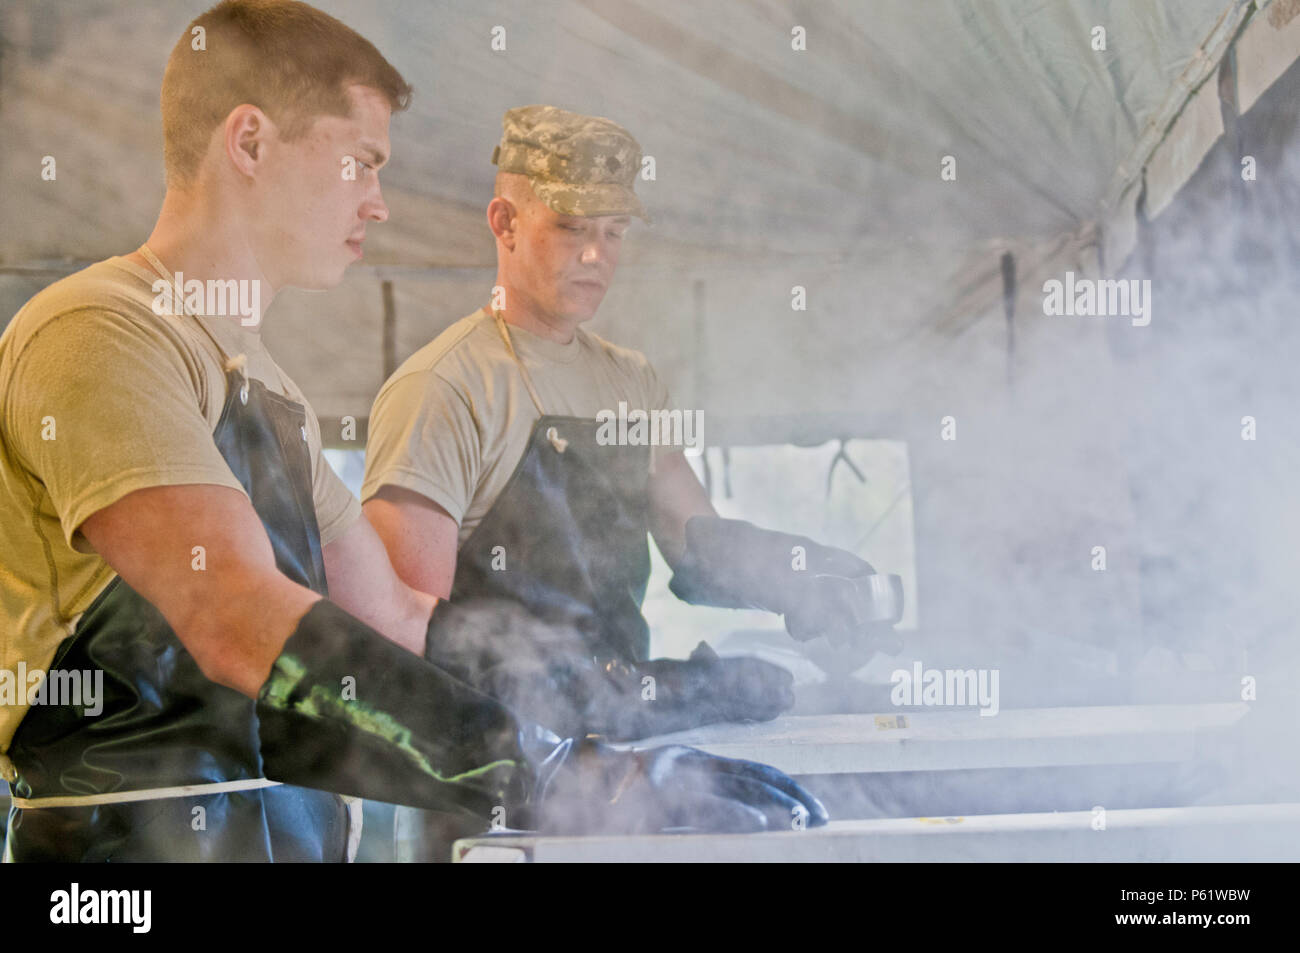 Spc. Maxim Trifonov, a motor transport operator with the 733rd Transportation Company, left, and Spc. Ezra Utting, also with the 733rd T.C., sanitize cooking utensils for the food services specialists competing in the annual Philip A. Connelly Award competition at Fort Indiantown Gap, Pa., April 23, 2016. (U.S. Army photo by Staff Sgt. Dalton Smith / Released) Stock Photo